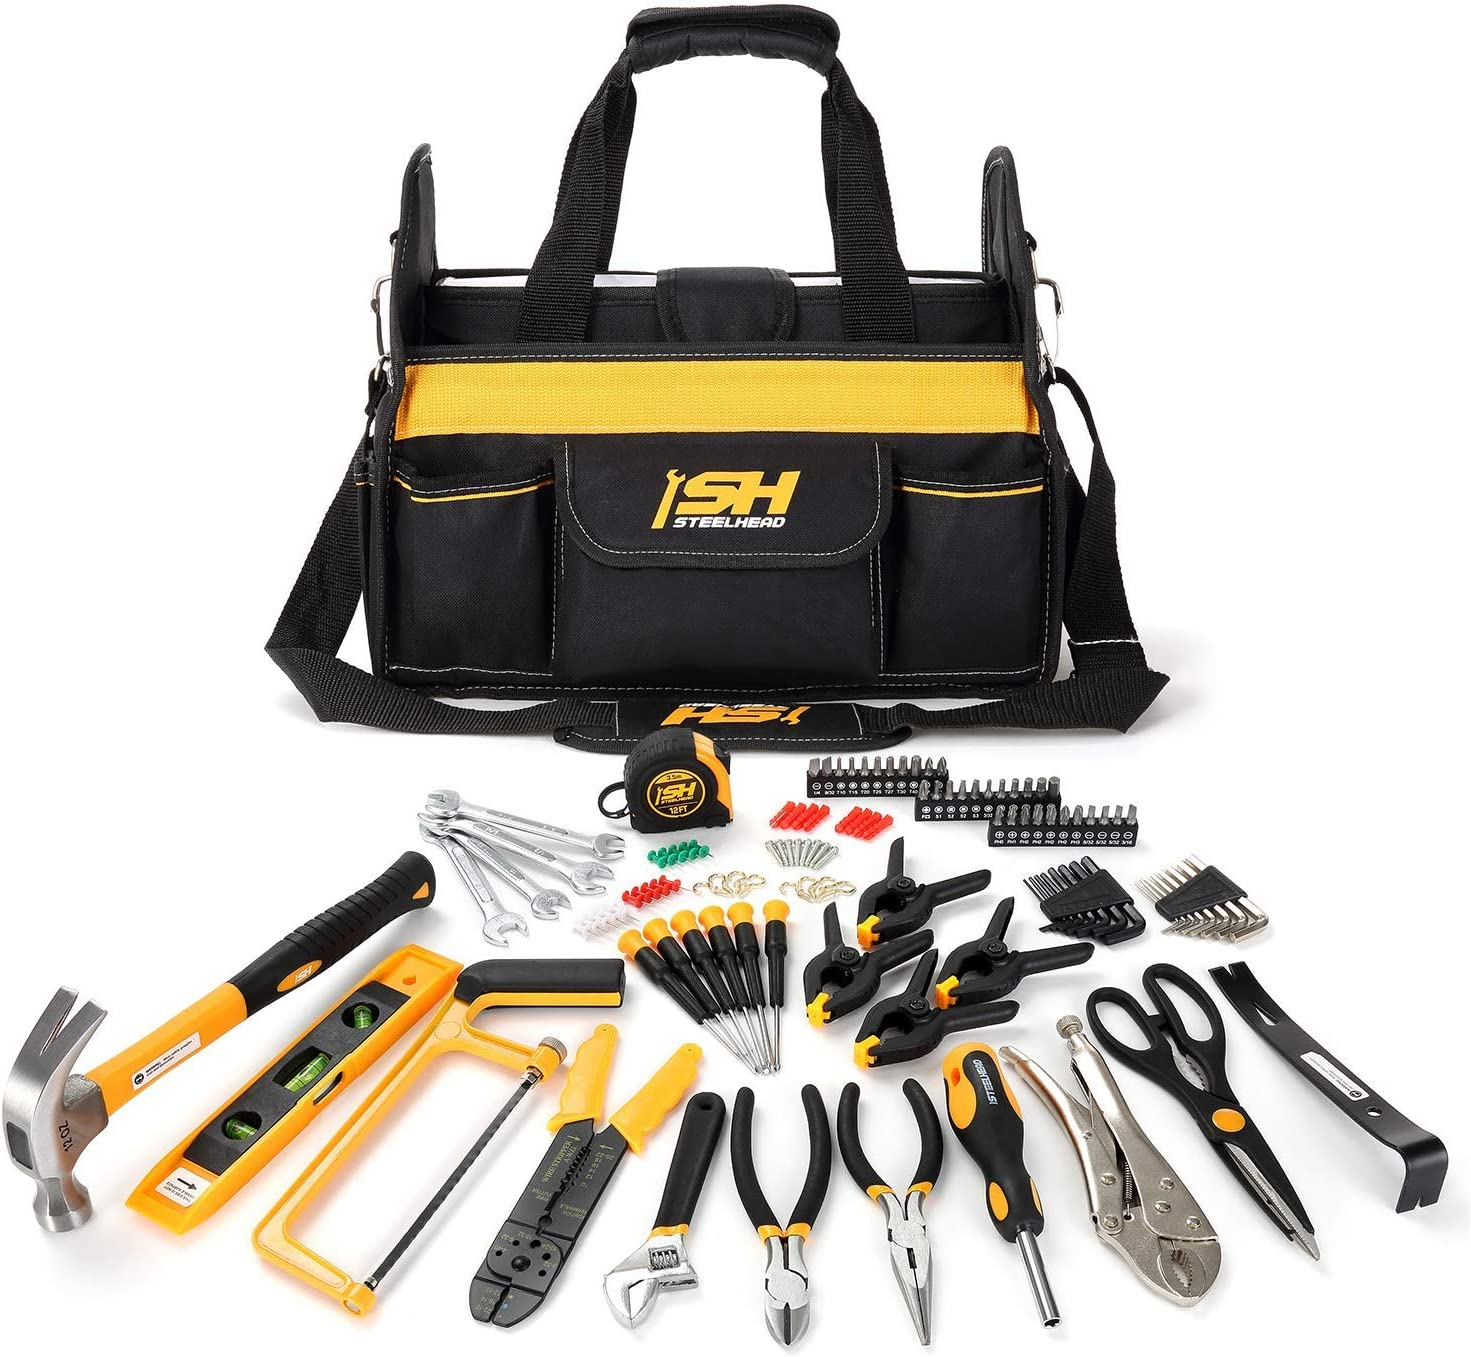 "STEELHEAD 117-Piece Tool Set, Screwdriver Handle, 33 Bits, Screwdrivers, Pliers, Tape Measure, 9"" Level, Hammer, Prybar, Wrenches, Scissors, Saw, Clamps, 14"" Tool Tote, Home, Office, USA-Based Support"